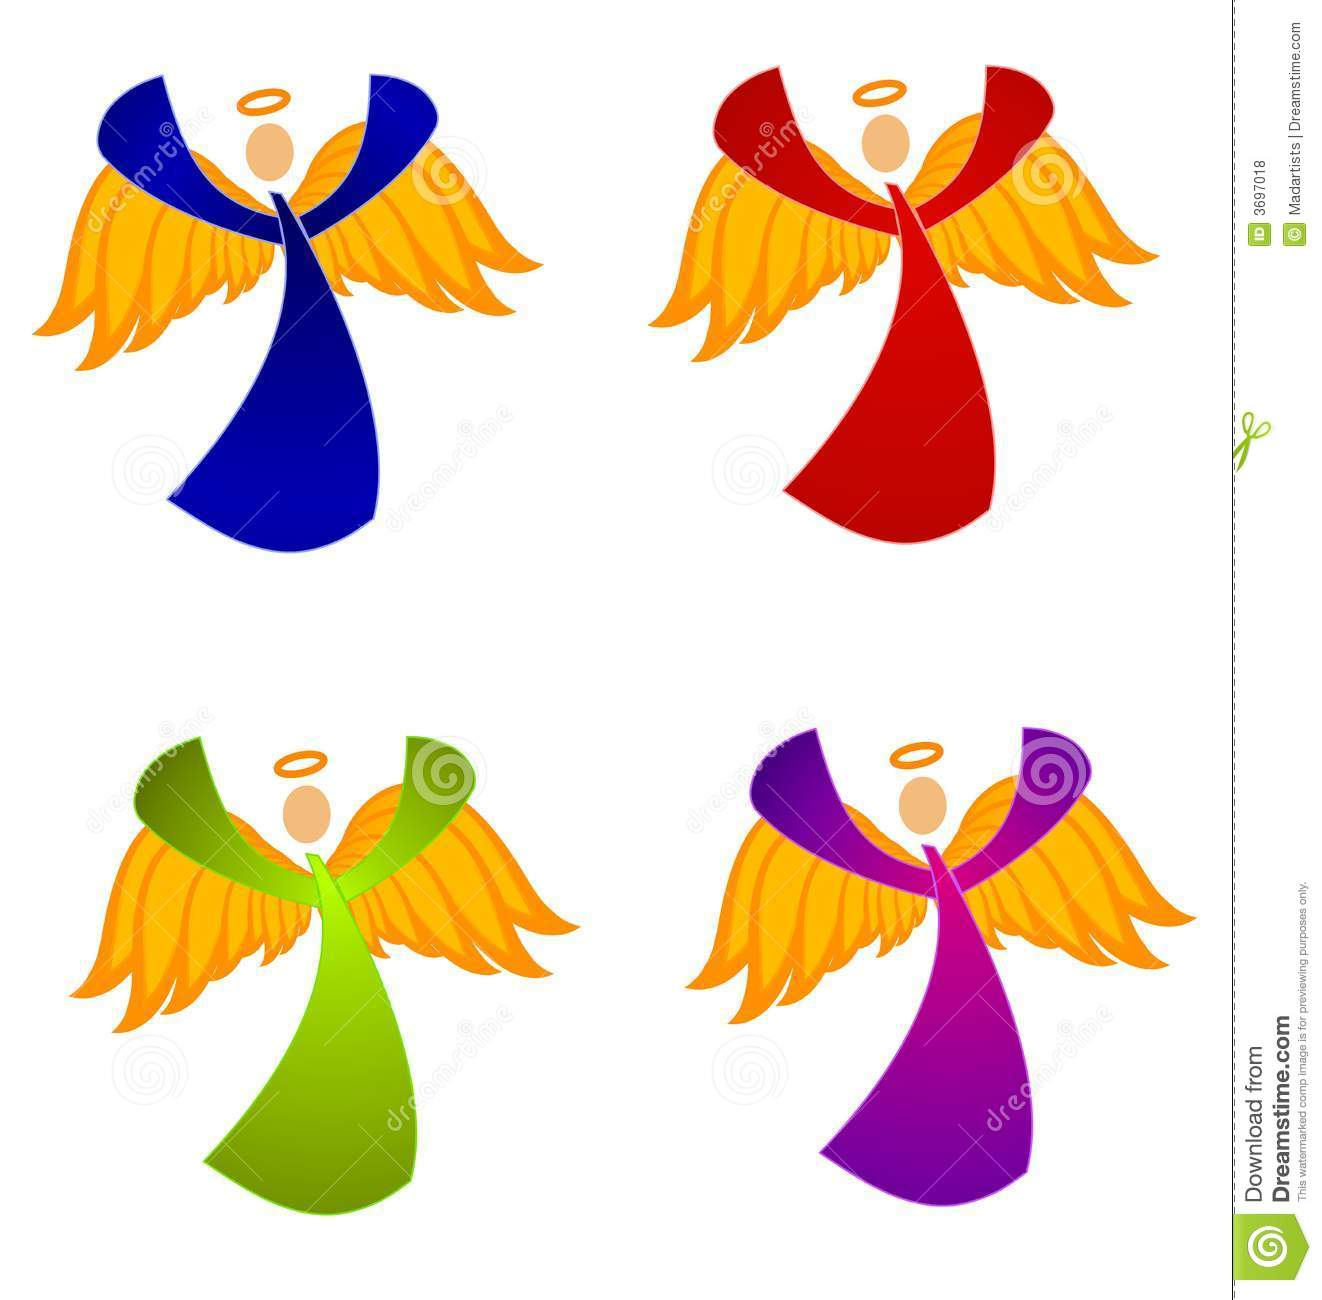 Christmas angels clipart #2